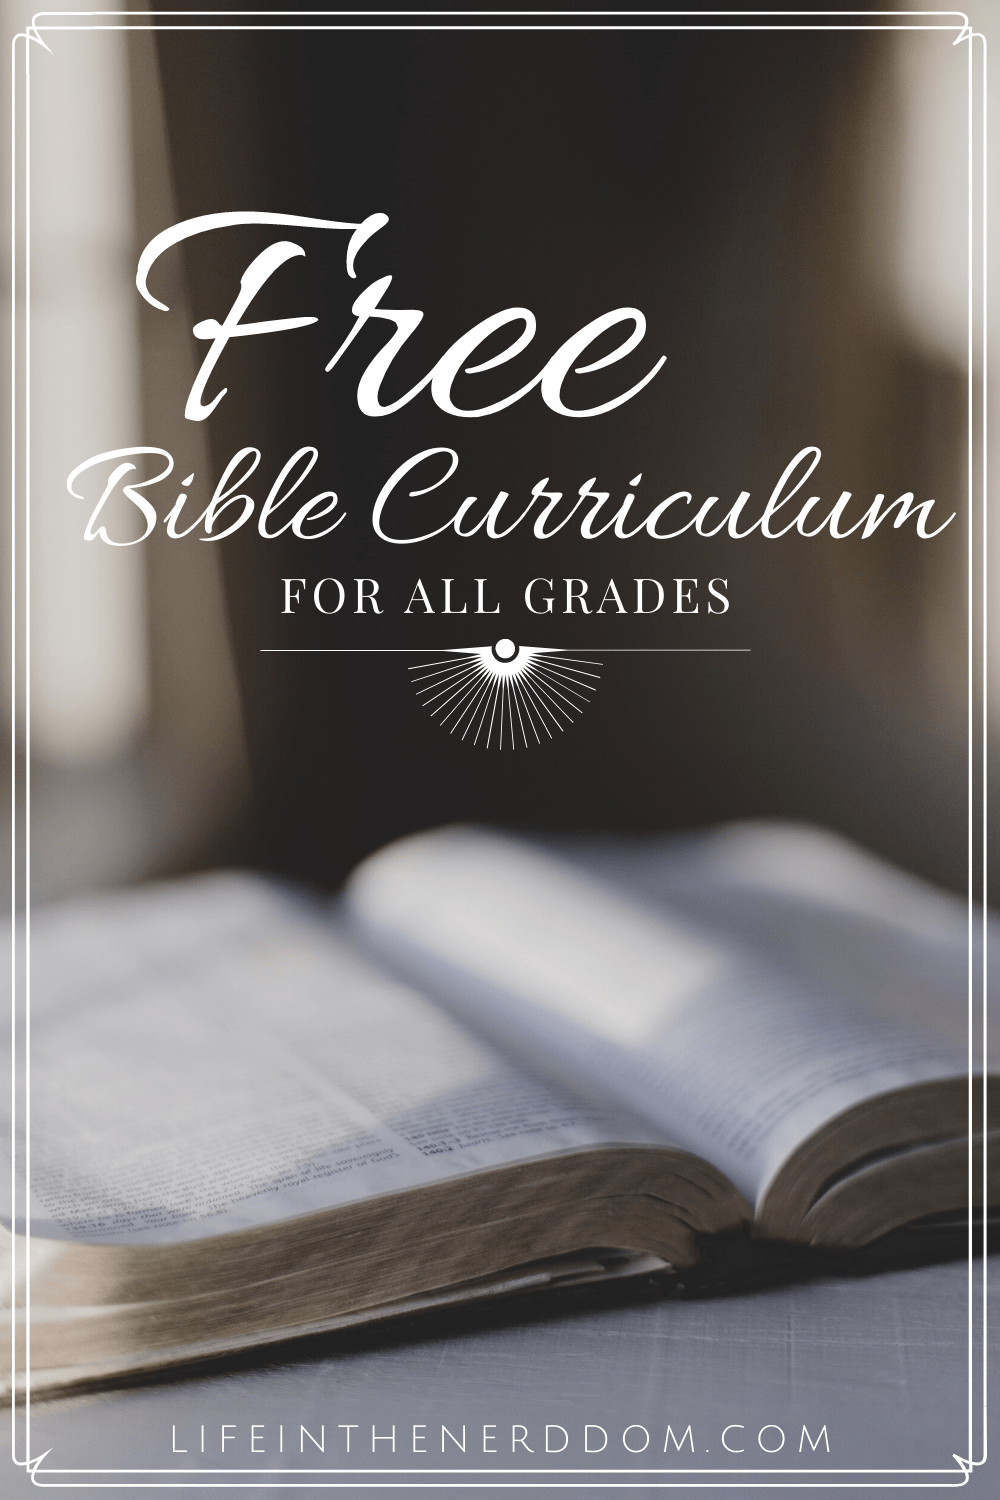 hight resolution of Free Bible Curriculum for All Grades - Life in the Nerddom